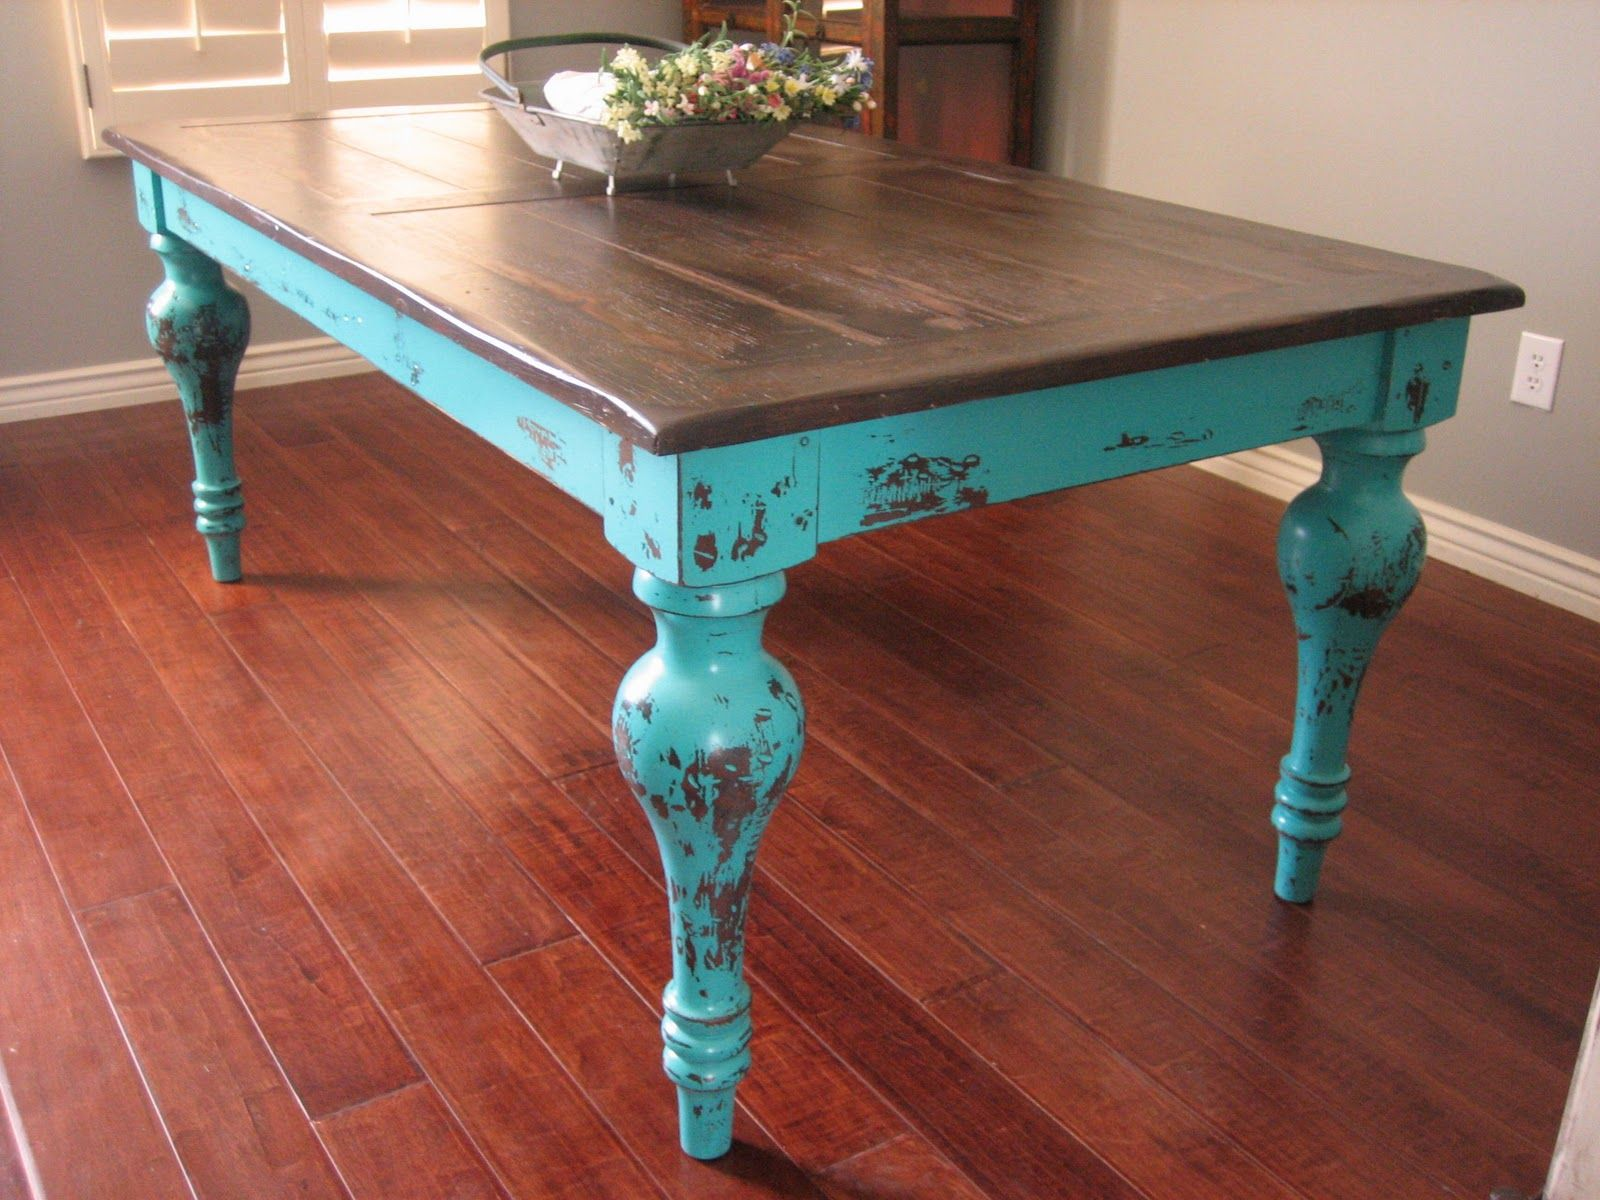 Small Rustic Kitchen Table: Rustic Dining Table. Inspiration For My Dining Table Re-do